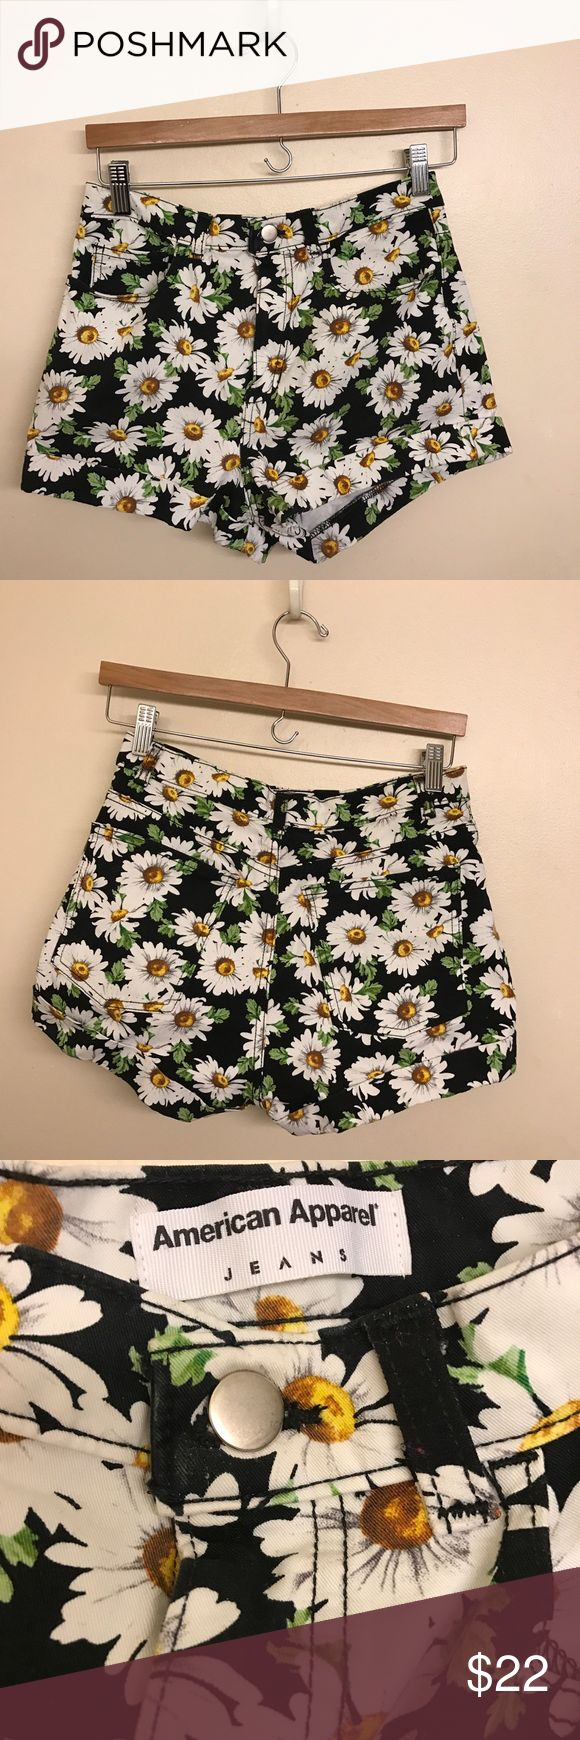 "American Apparel Black Daisy Shorts This is a pair of American Apparel high waisted daisy printed shorts. These are really sturdy and made of high quality material. The size is 28"" which is around a size 4-6 in women's US sizes. These shorts are super comfy and are made of an awesome stretchy material. I love these shorts but unfortunately I've only used them once and they no longer fit. They remain in perfect condition, like new. This statement piece is perfect for any badass' wardrobe…"